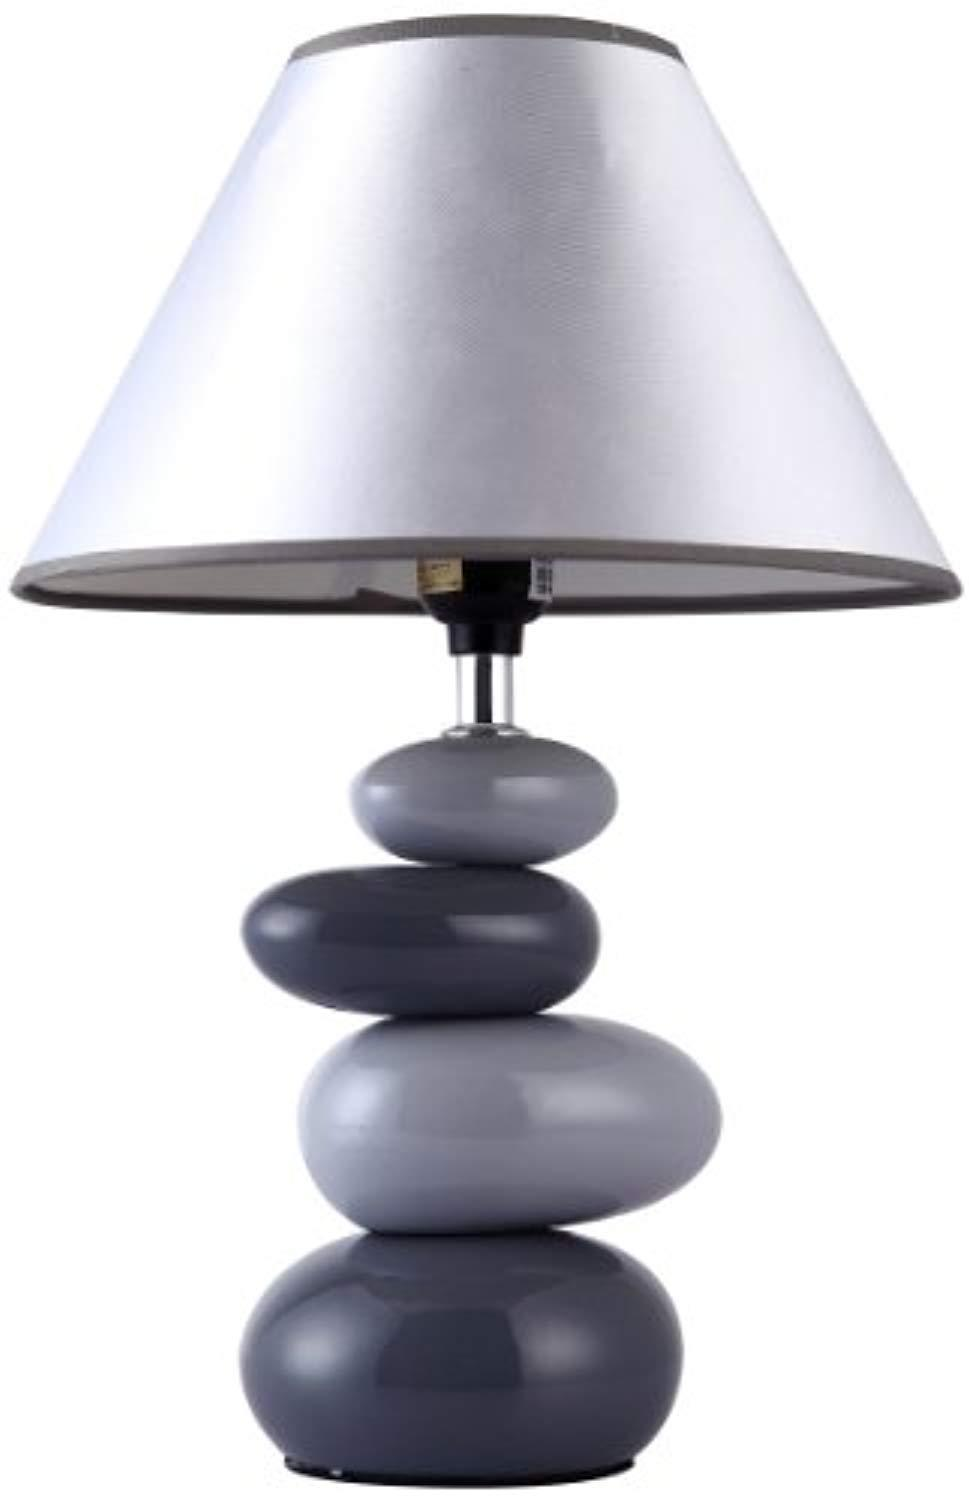 Simple Designs Home LT3052-GRY Shades of Gray Ceramic Stone Table Lamp - zingydecor